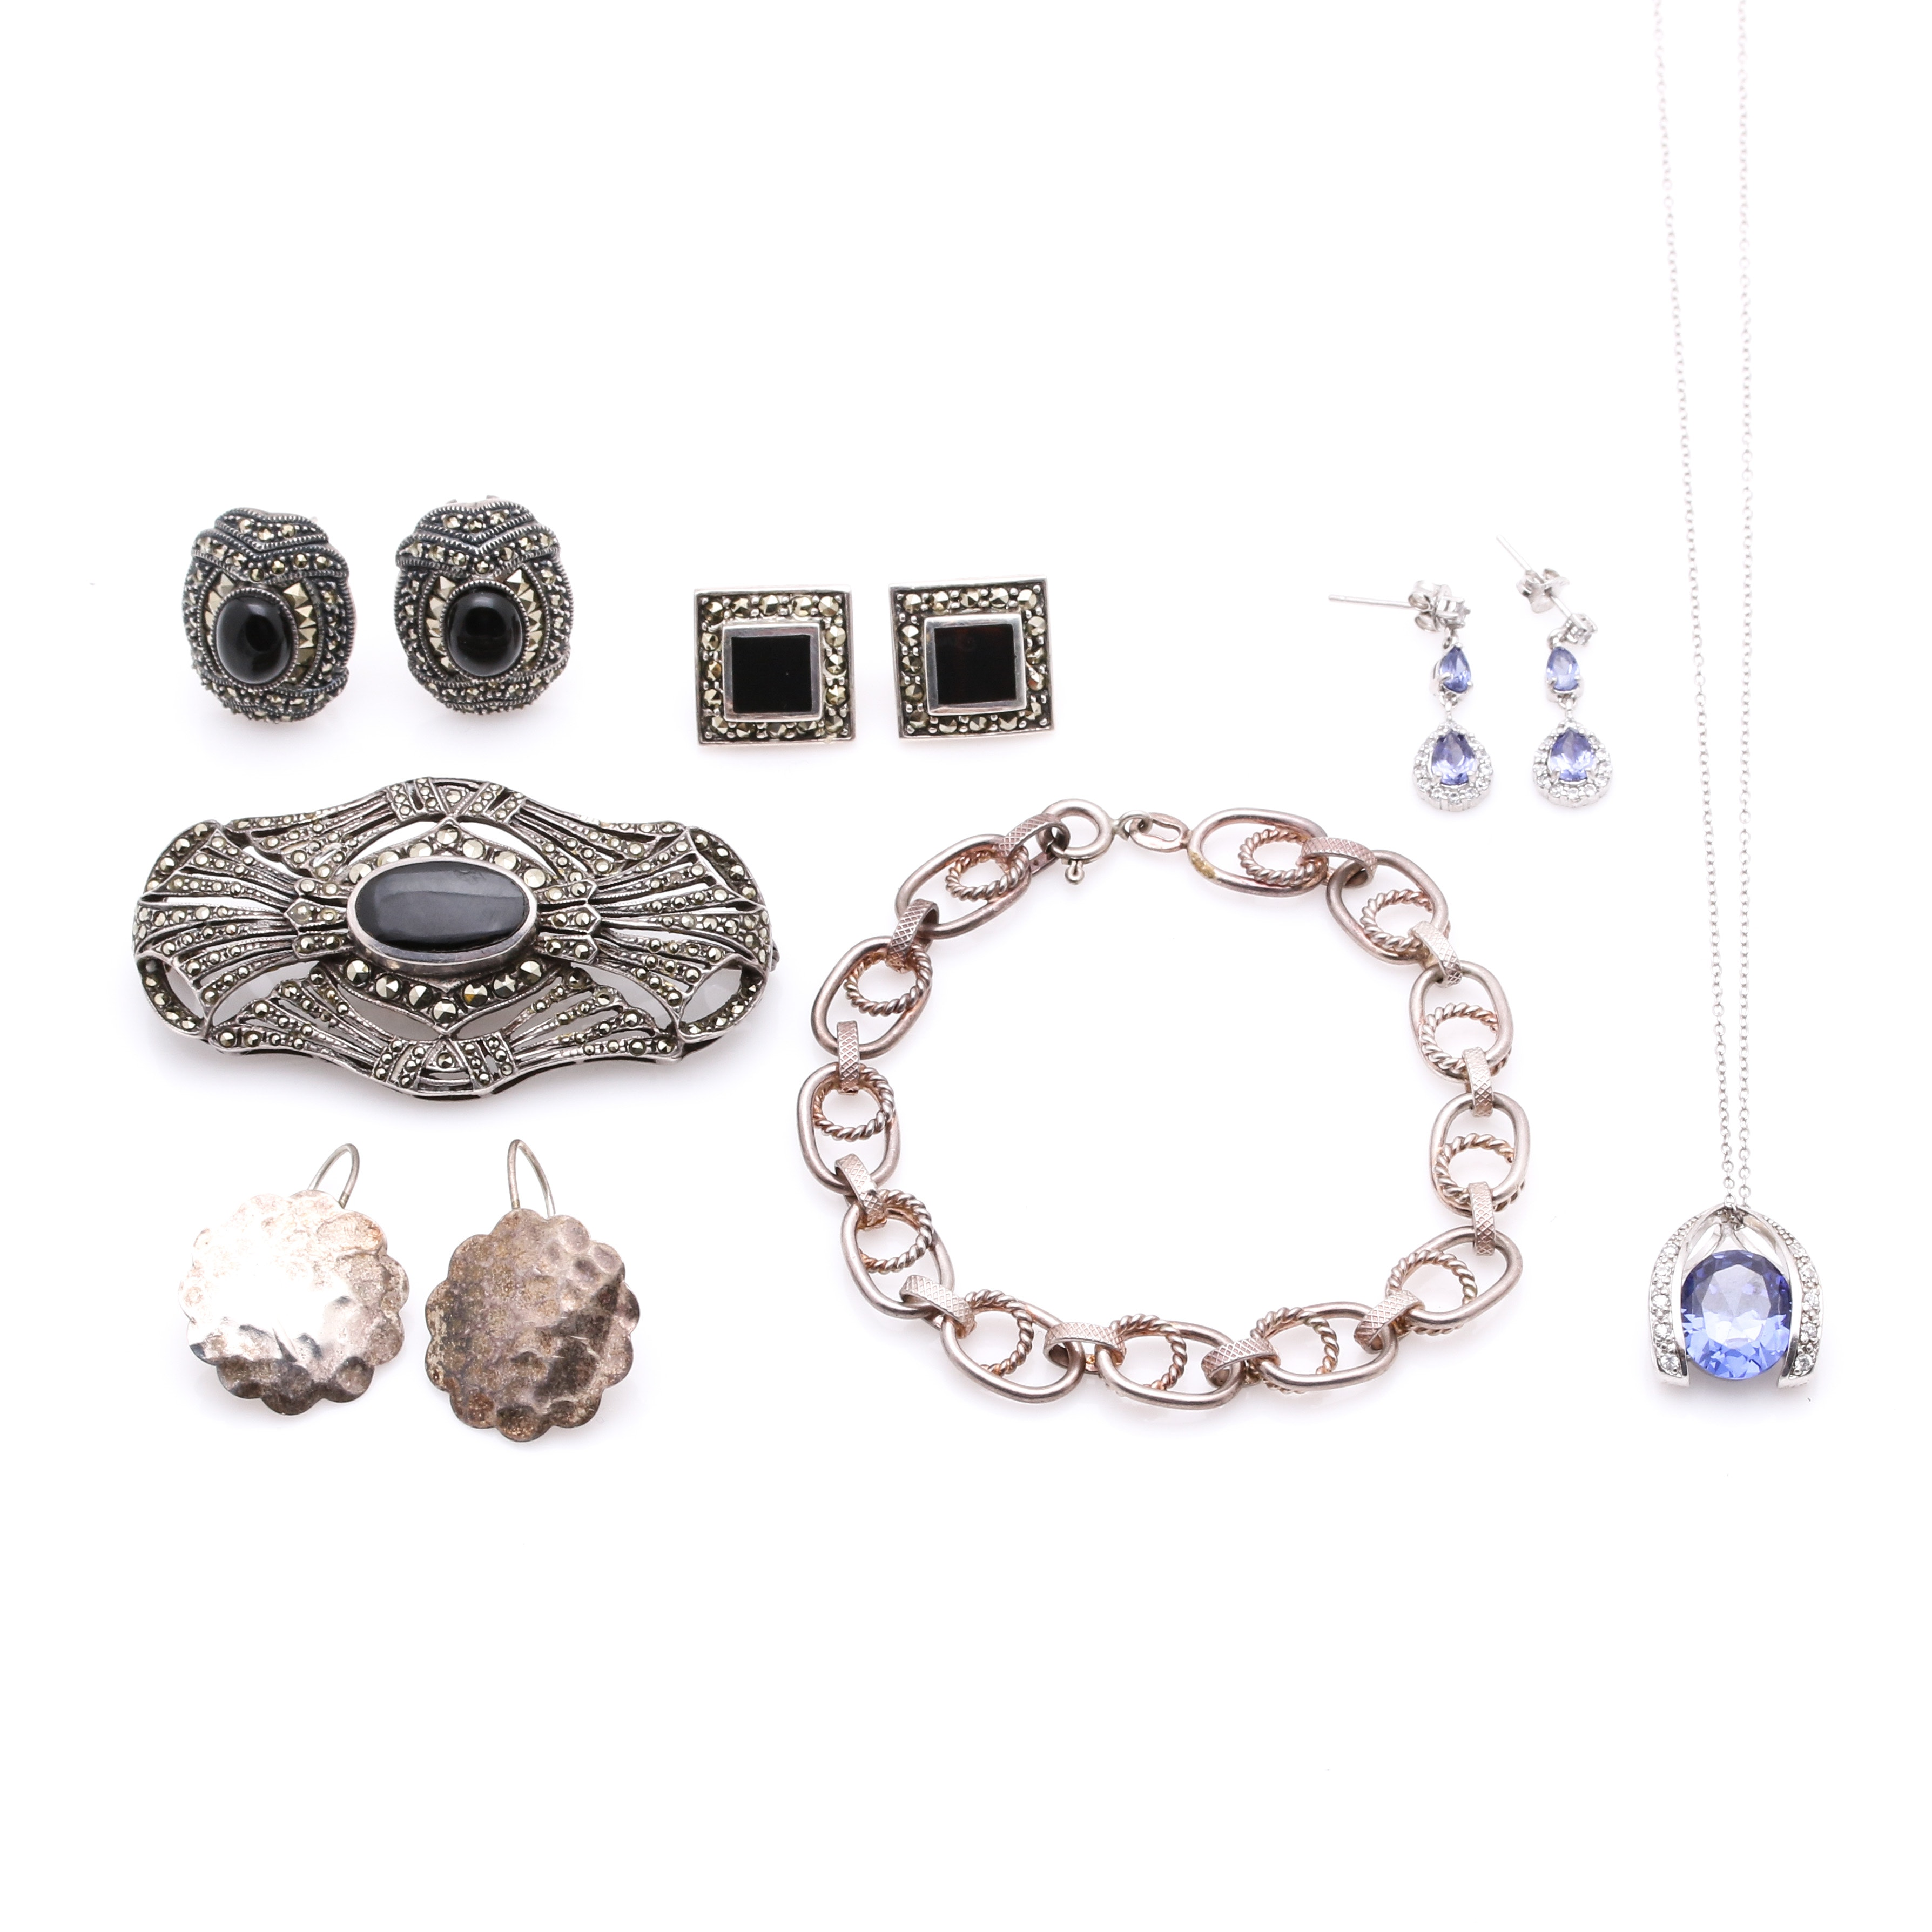 Assortment of Sterling Silver Gemstone Jewelry Featuring Judith Jack